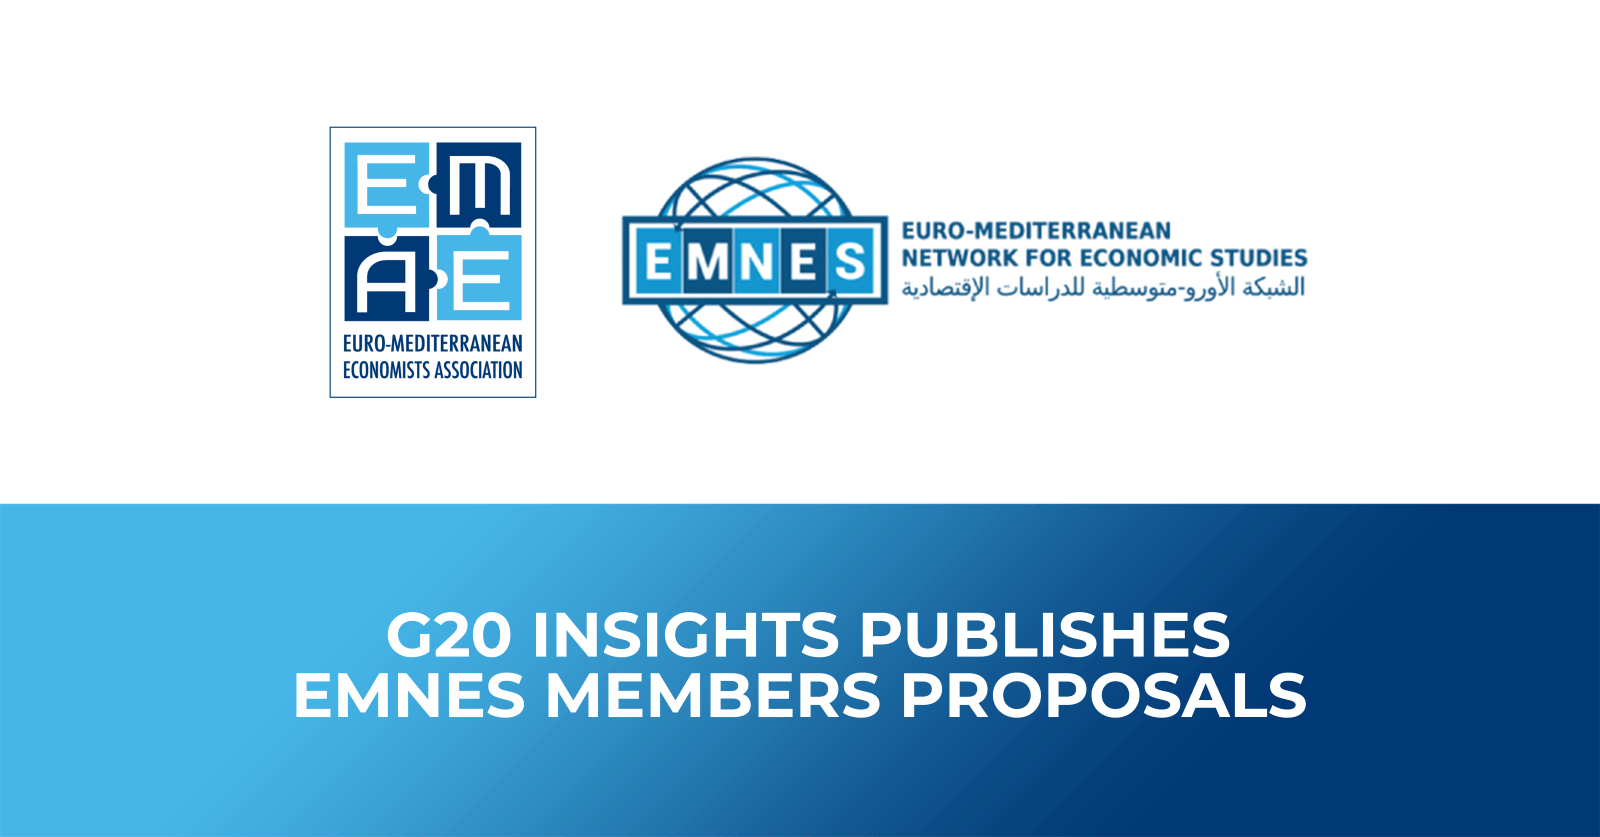 G20 Insights publishes EMNES members proposals